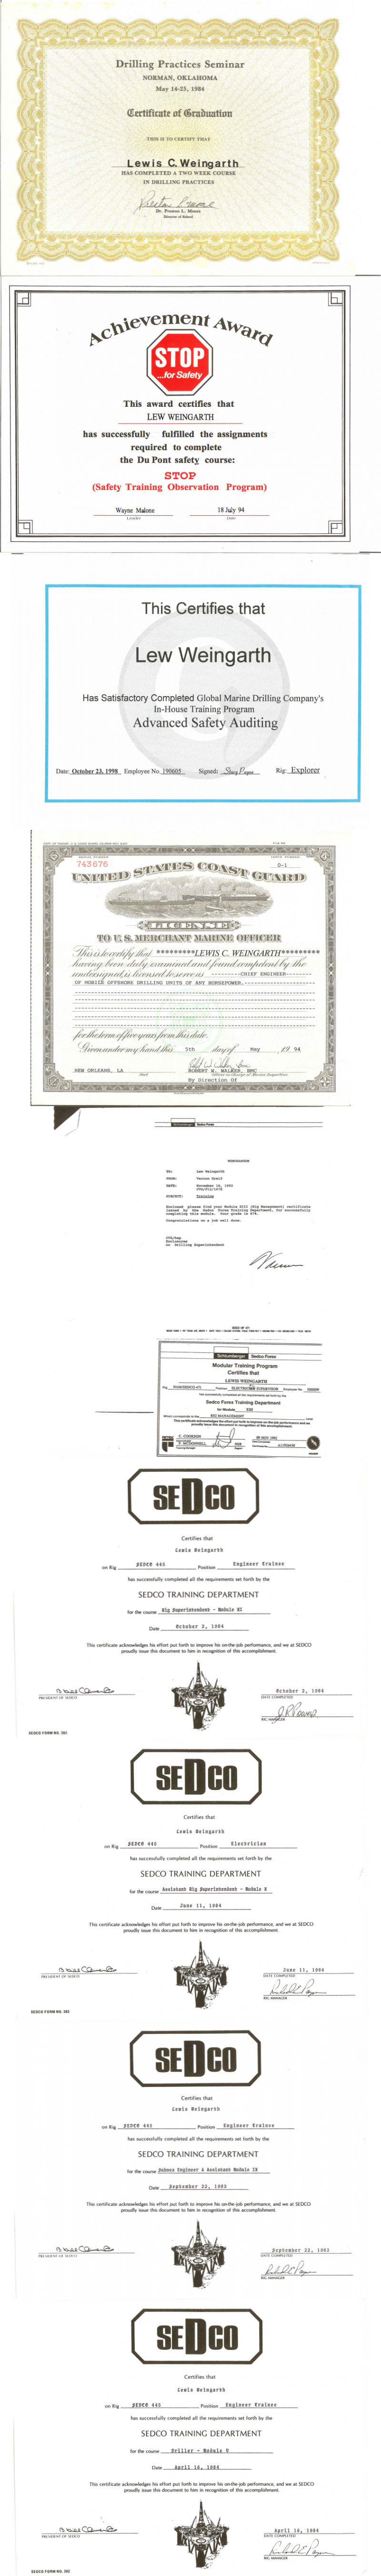 drilling related certificates